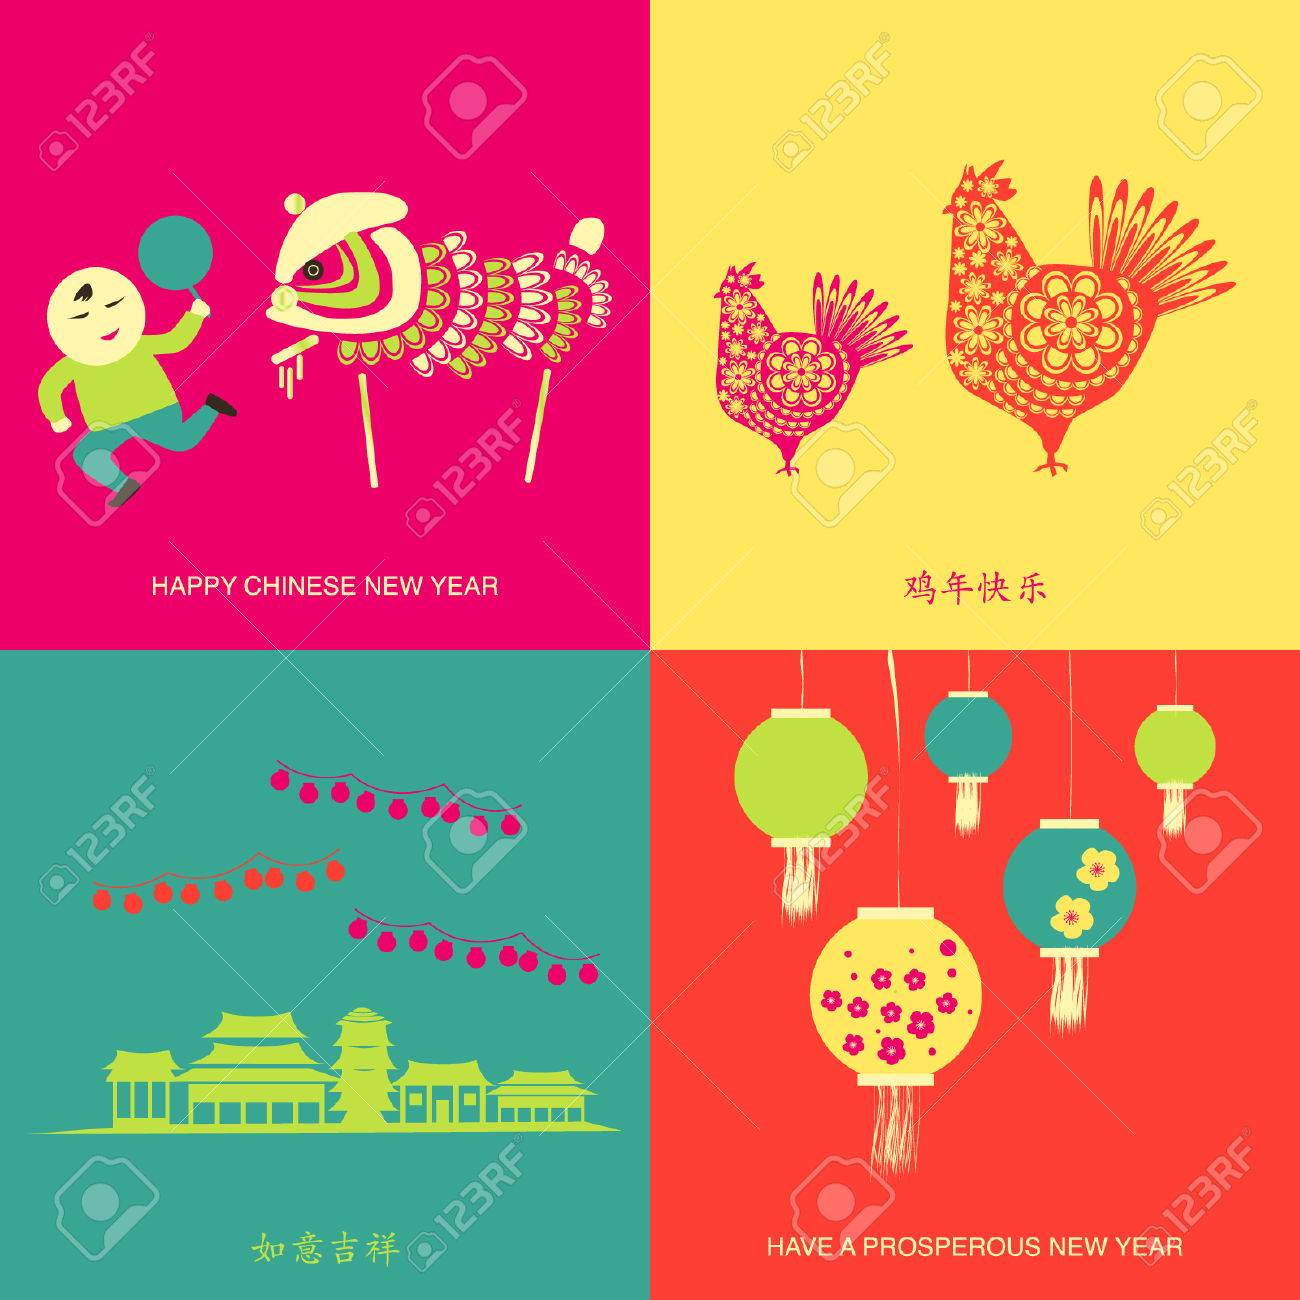 Modern design for chinese new year 2017 the year of rooster modern design for chinese new year 2017 the year of rooster chinese wording are m4hsunfo